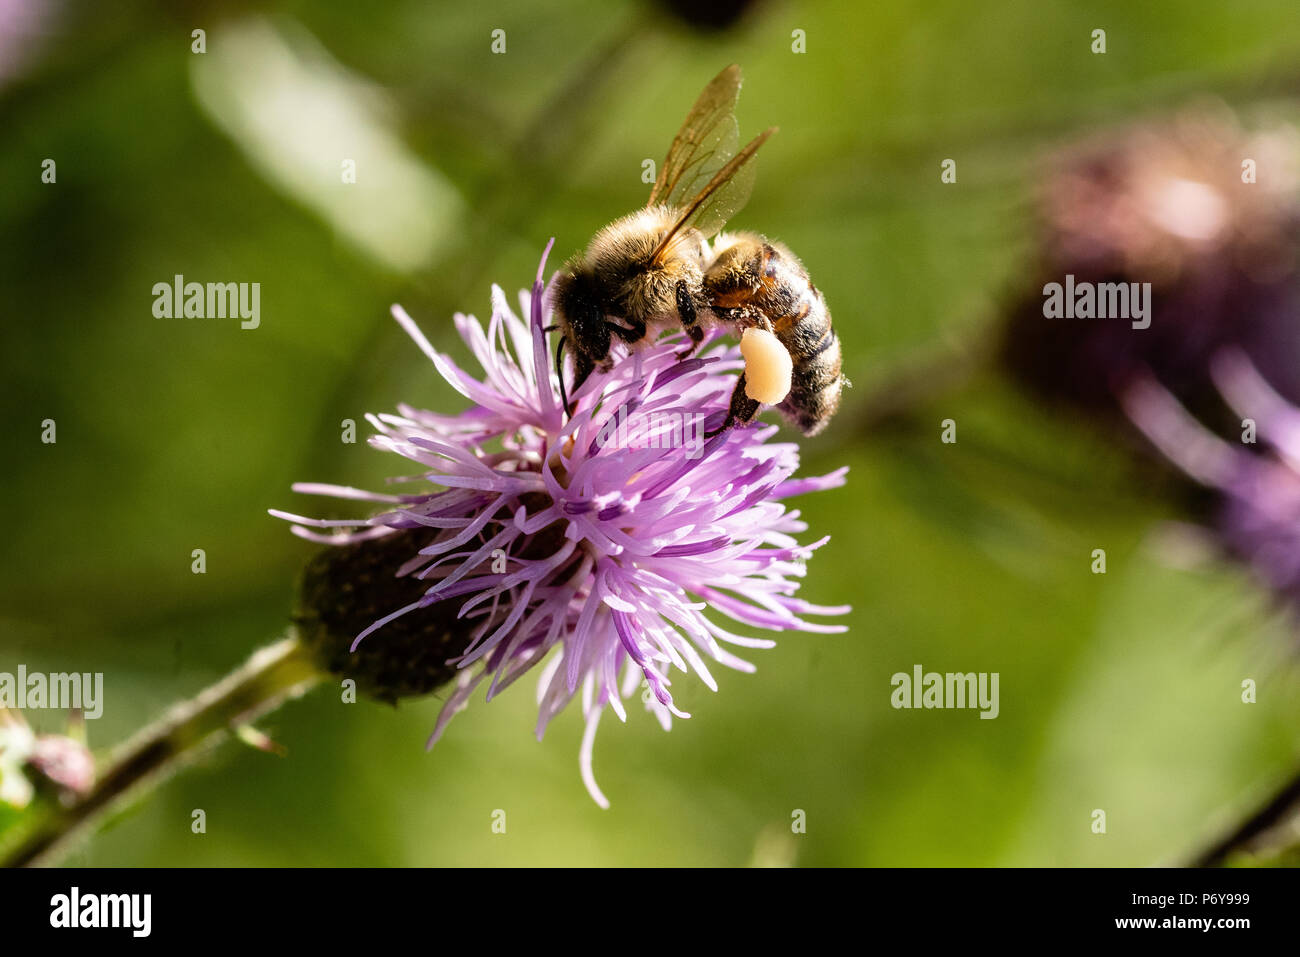 Honey Bee, creeping thistle, Black Forest, Germany Stock Photo